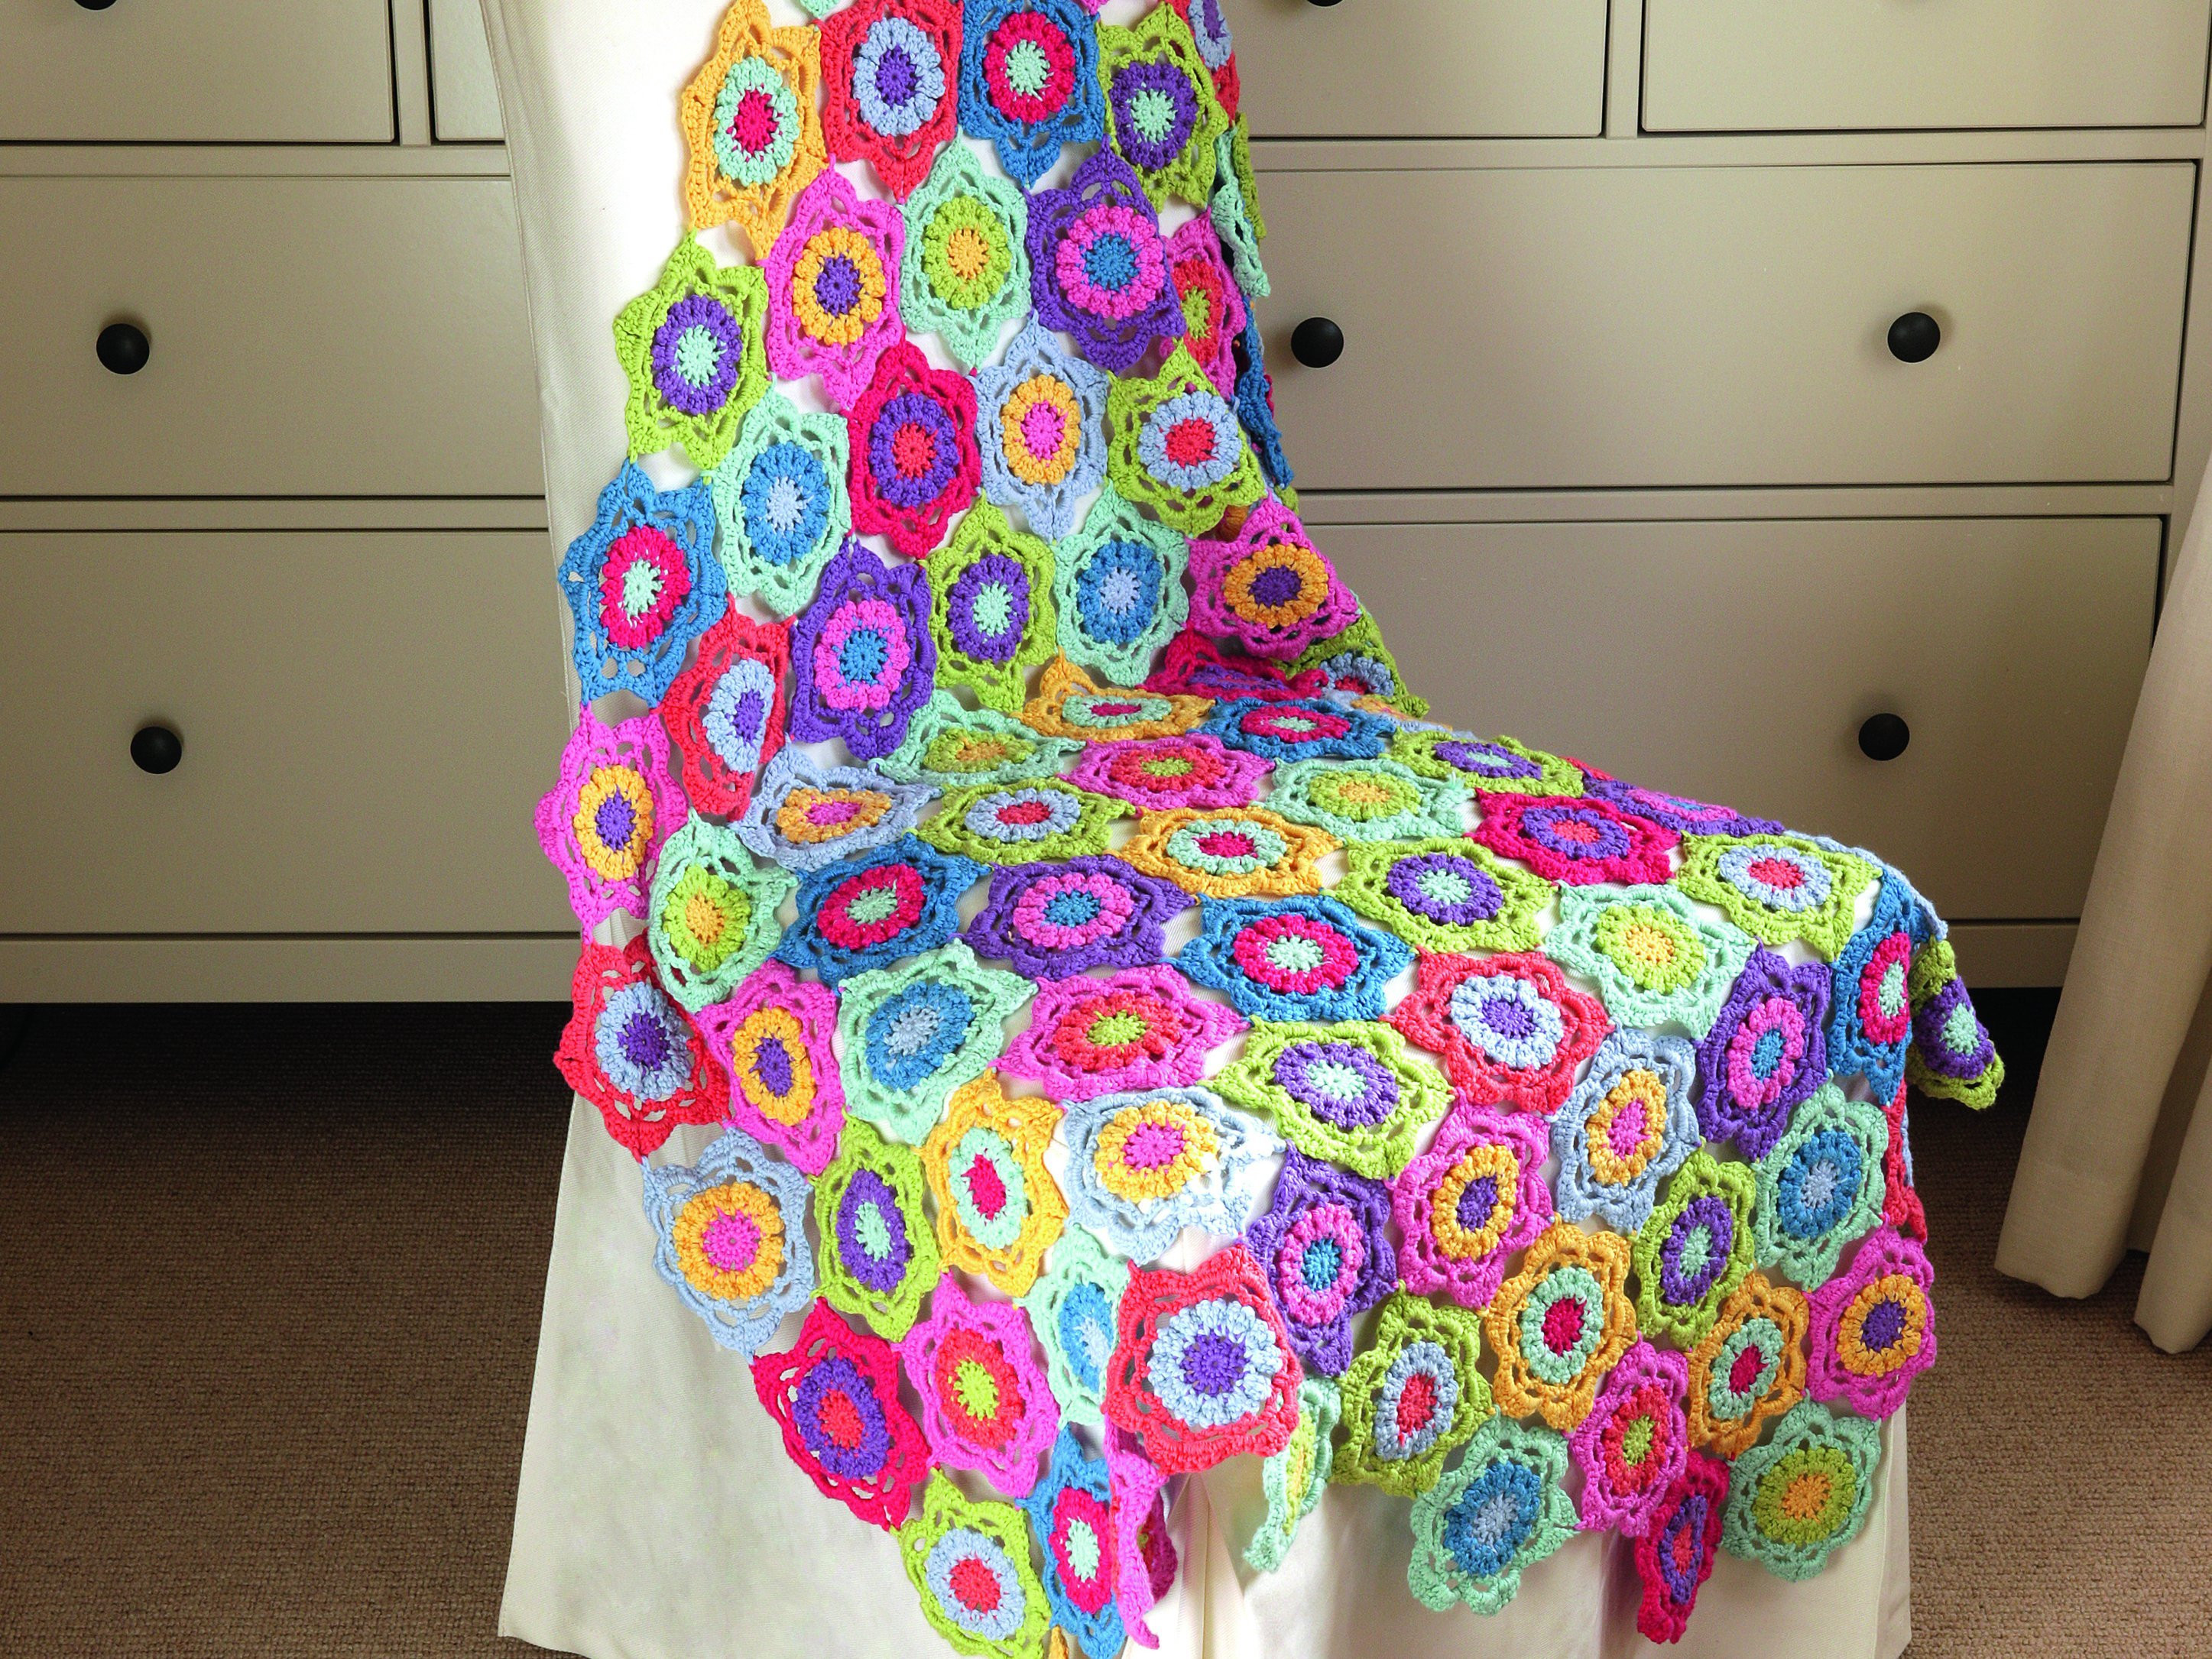 Technicolour Floral Blanket- Best Bits and more!